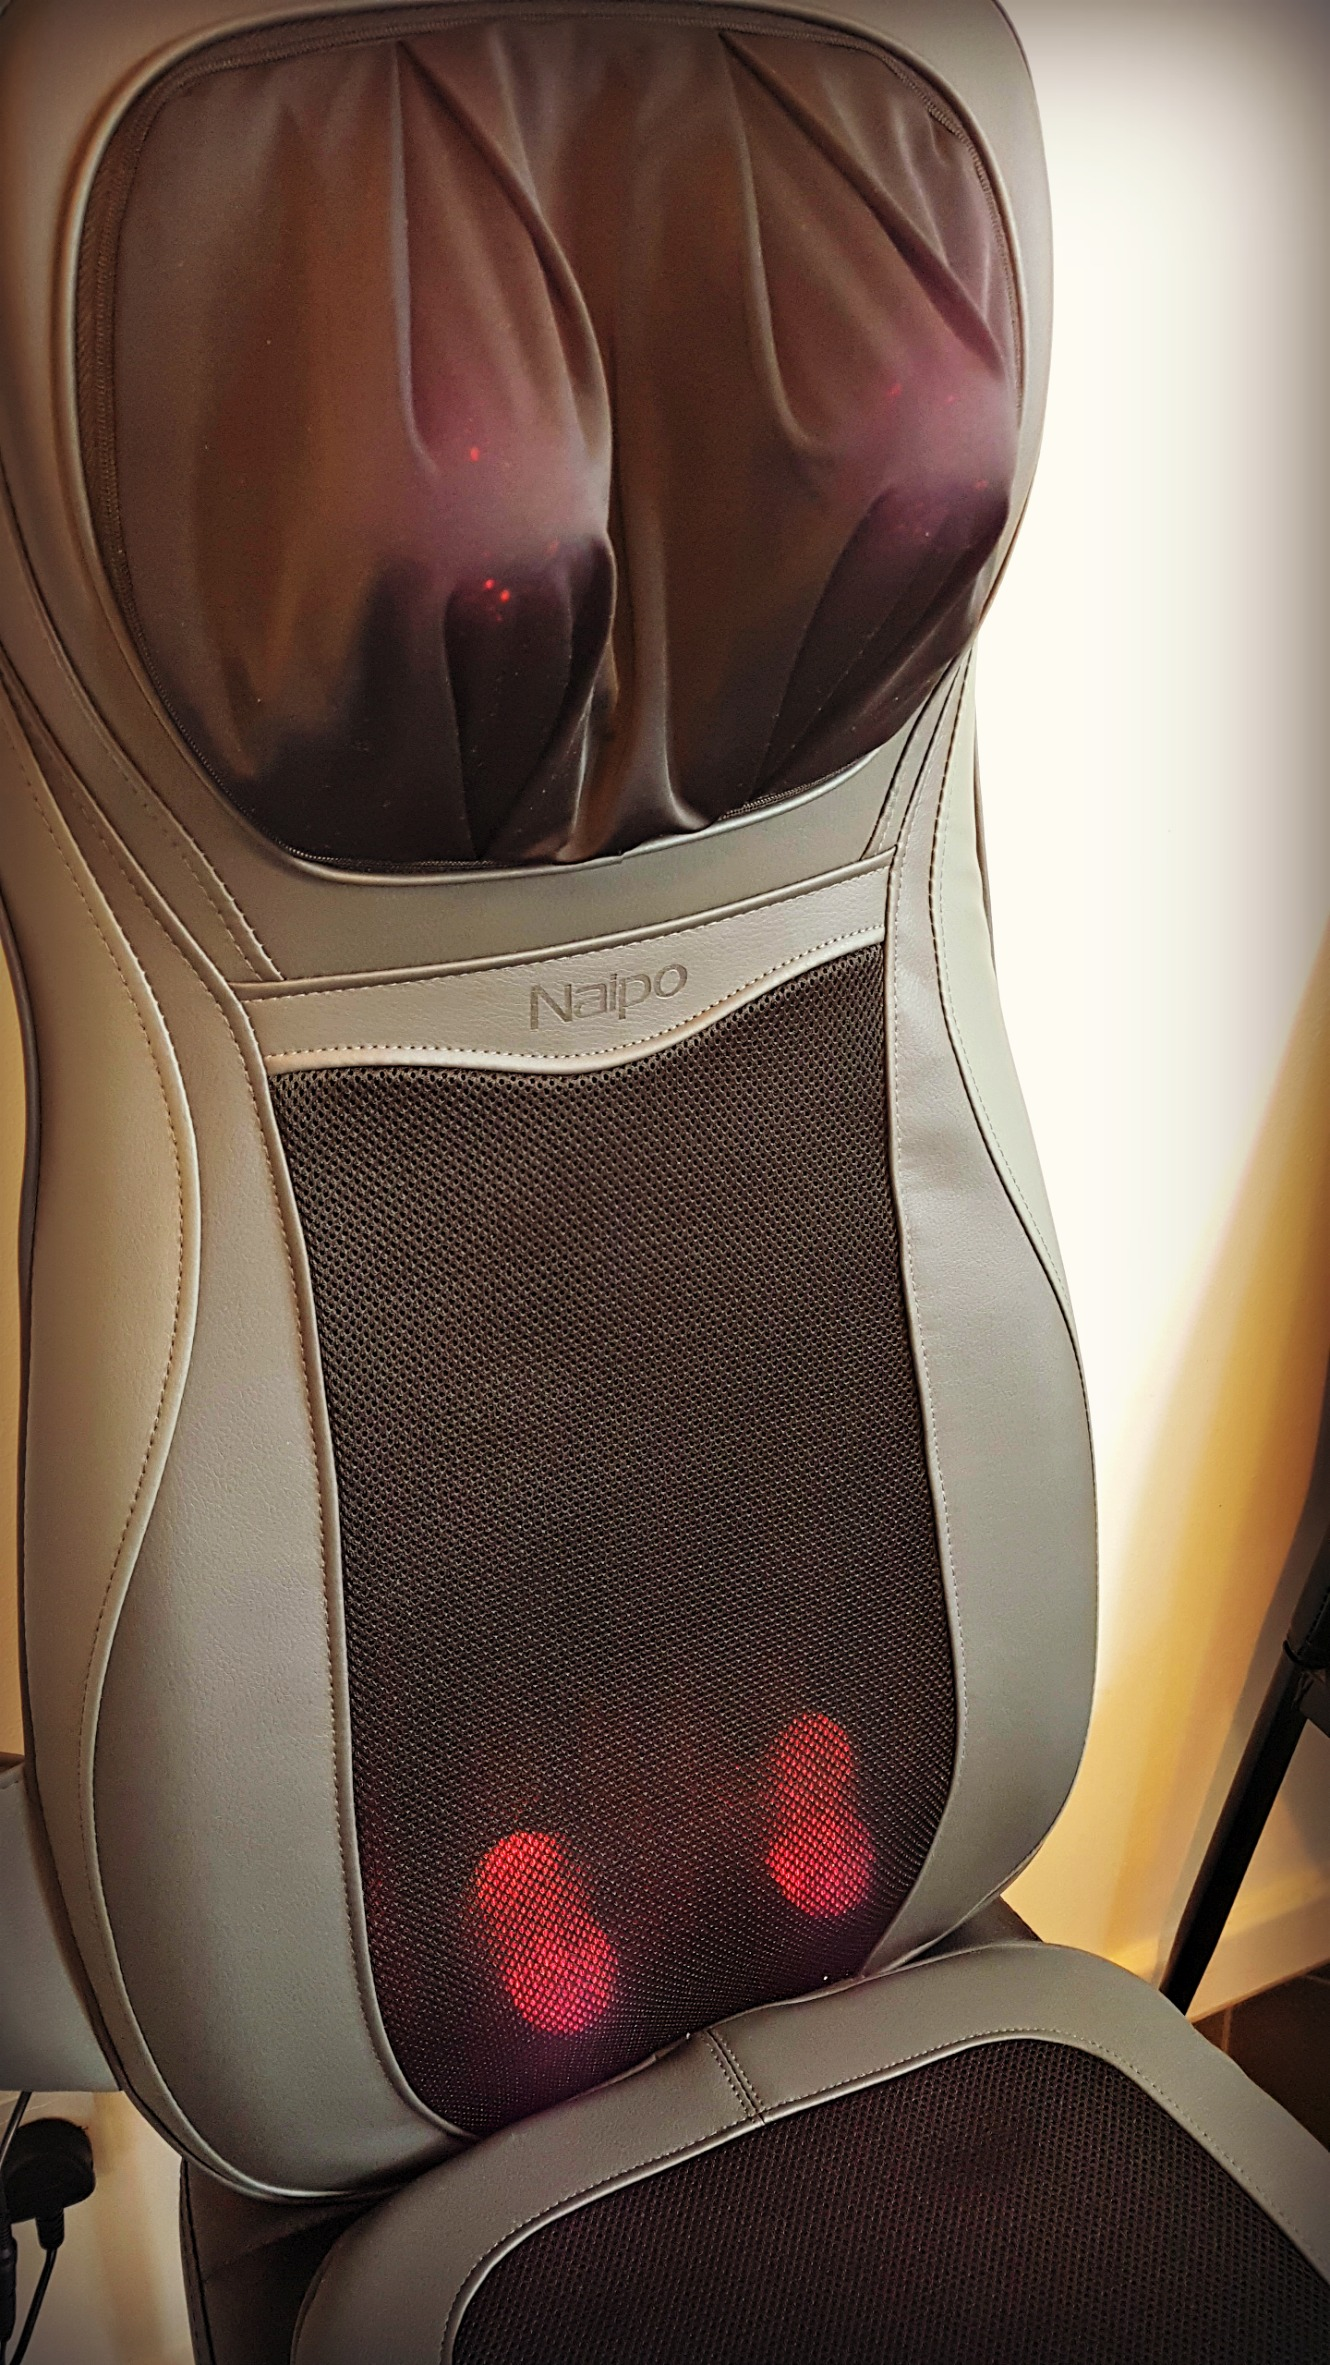 naipo back massager with nodes active and heat function switched on